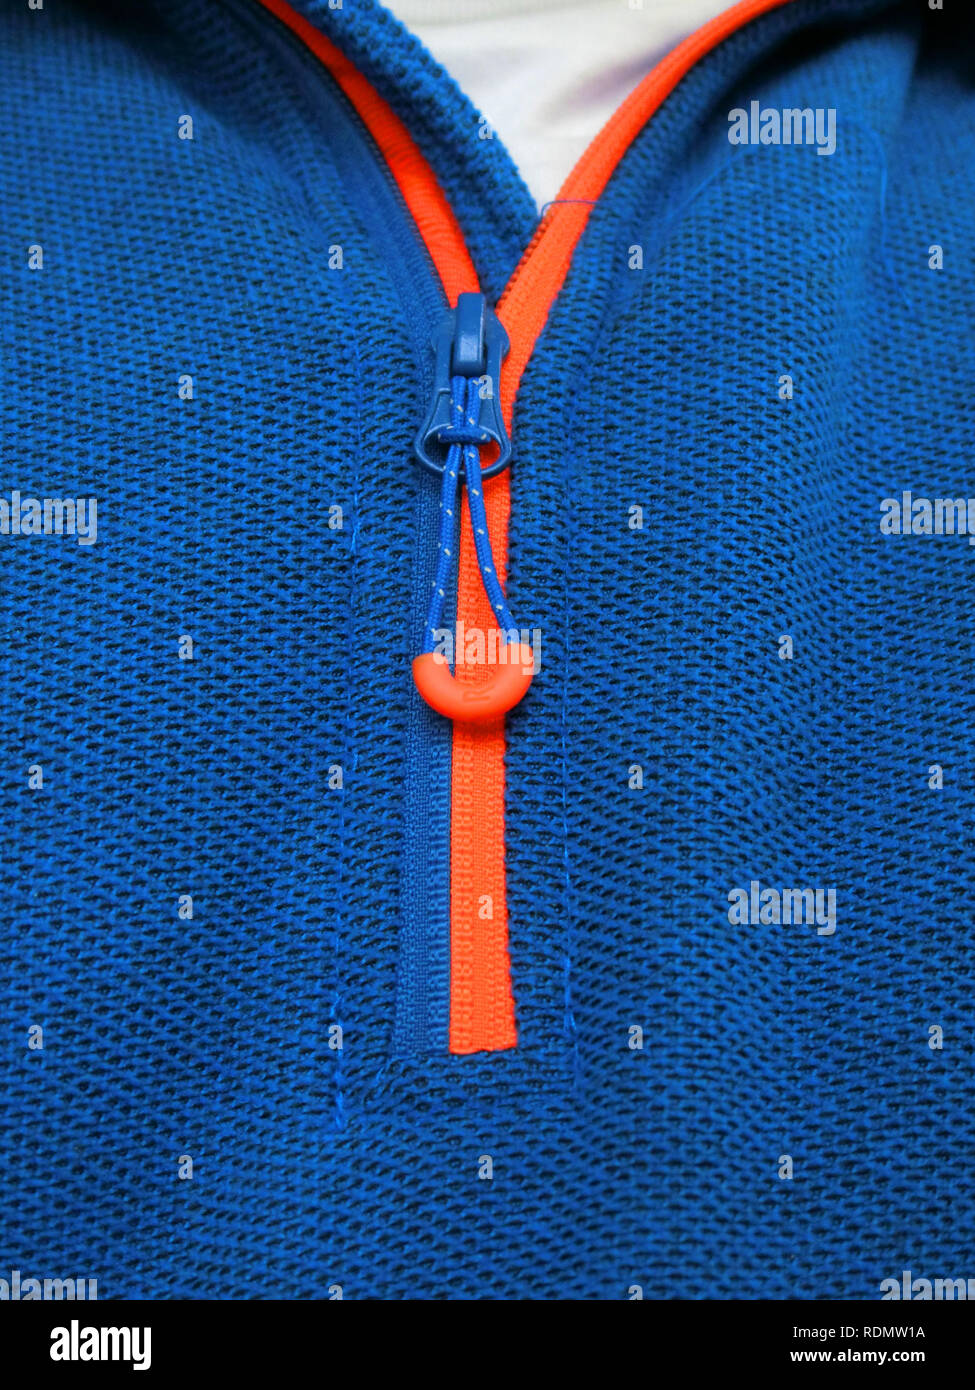 Orange Zip Fastner With Toggle or Zipper on a Man's Blue Sweatshirt Clothing Stock Photo